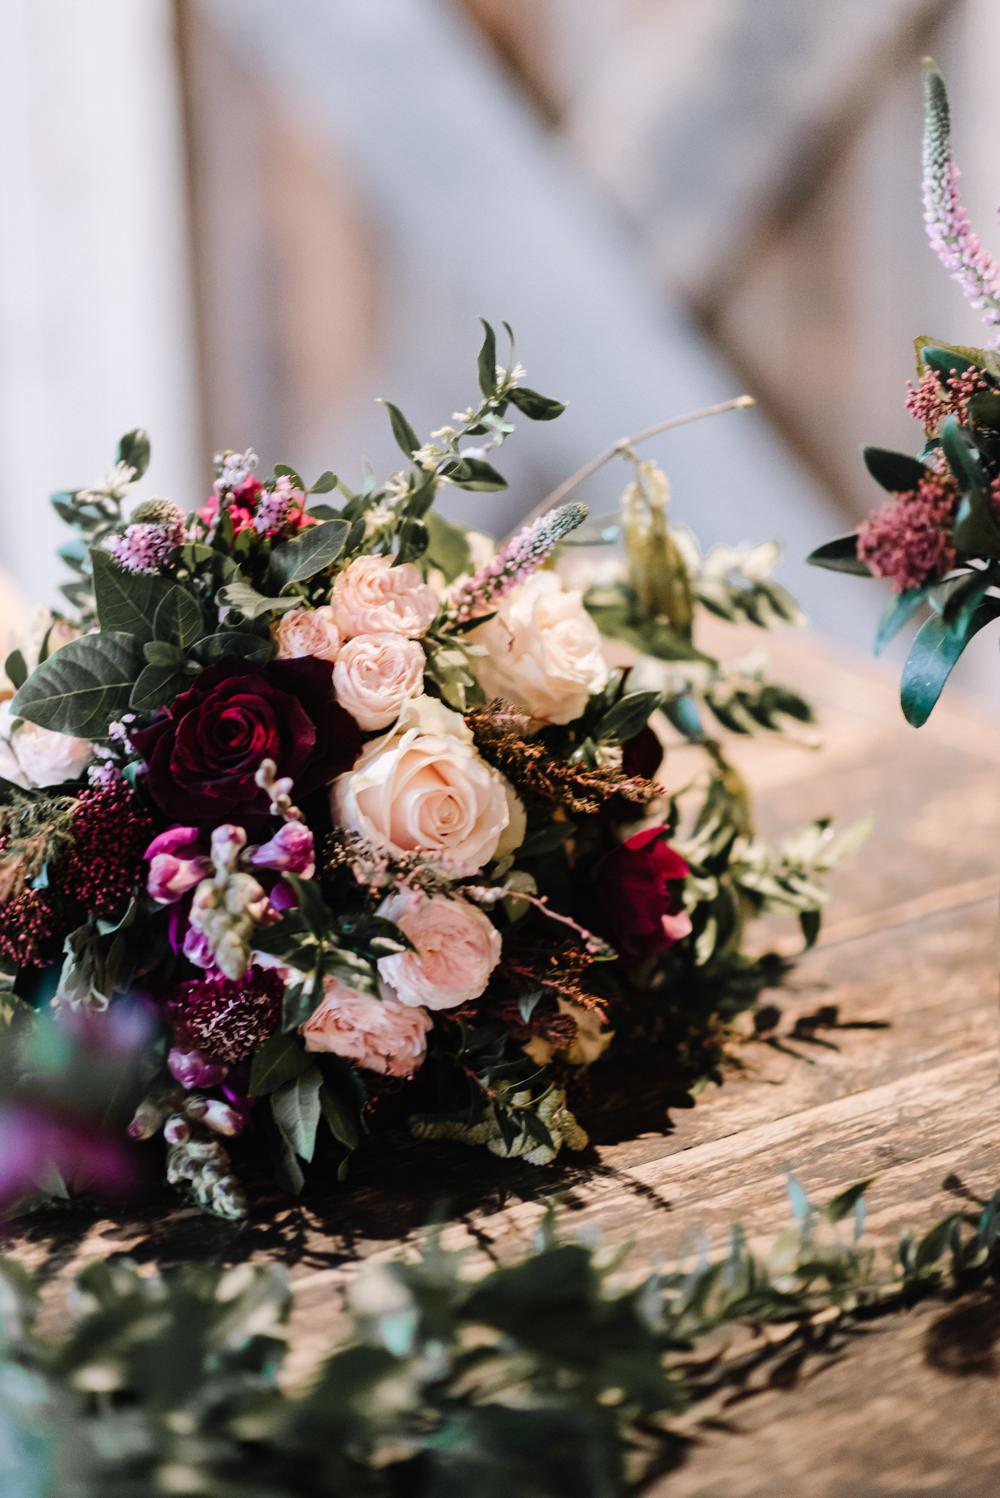 Bouquet Flowers Bride Bridal Burgundy Greenery Foliage Blush Rose Dewsall Court Wedding Oobaloos Photography